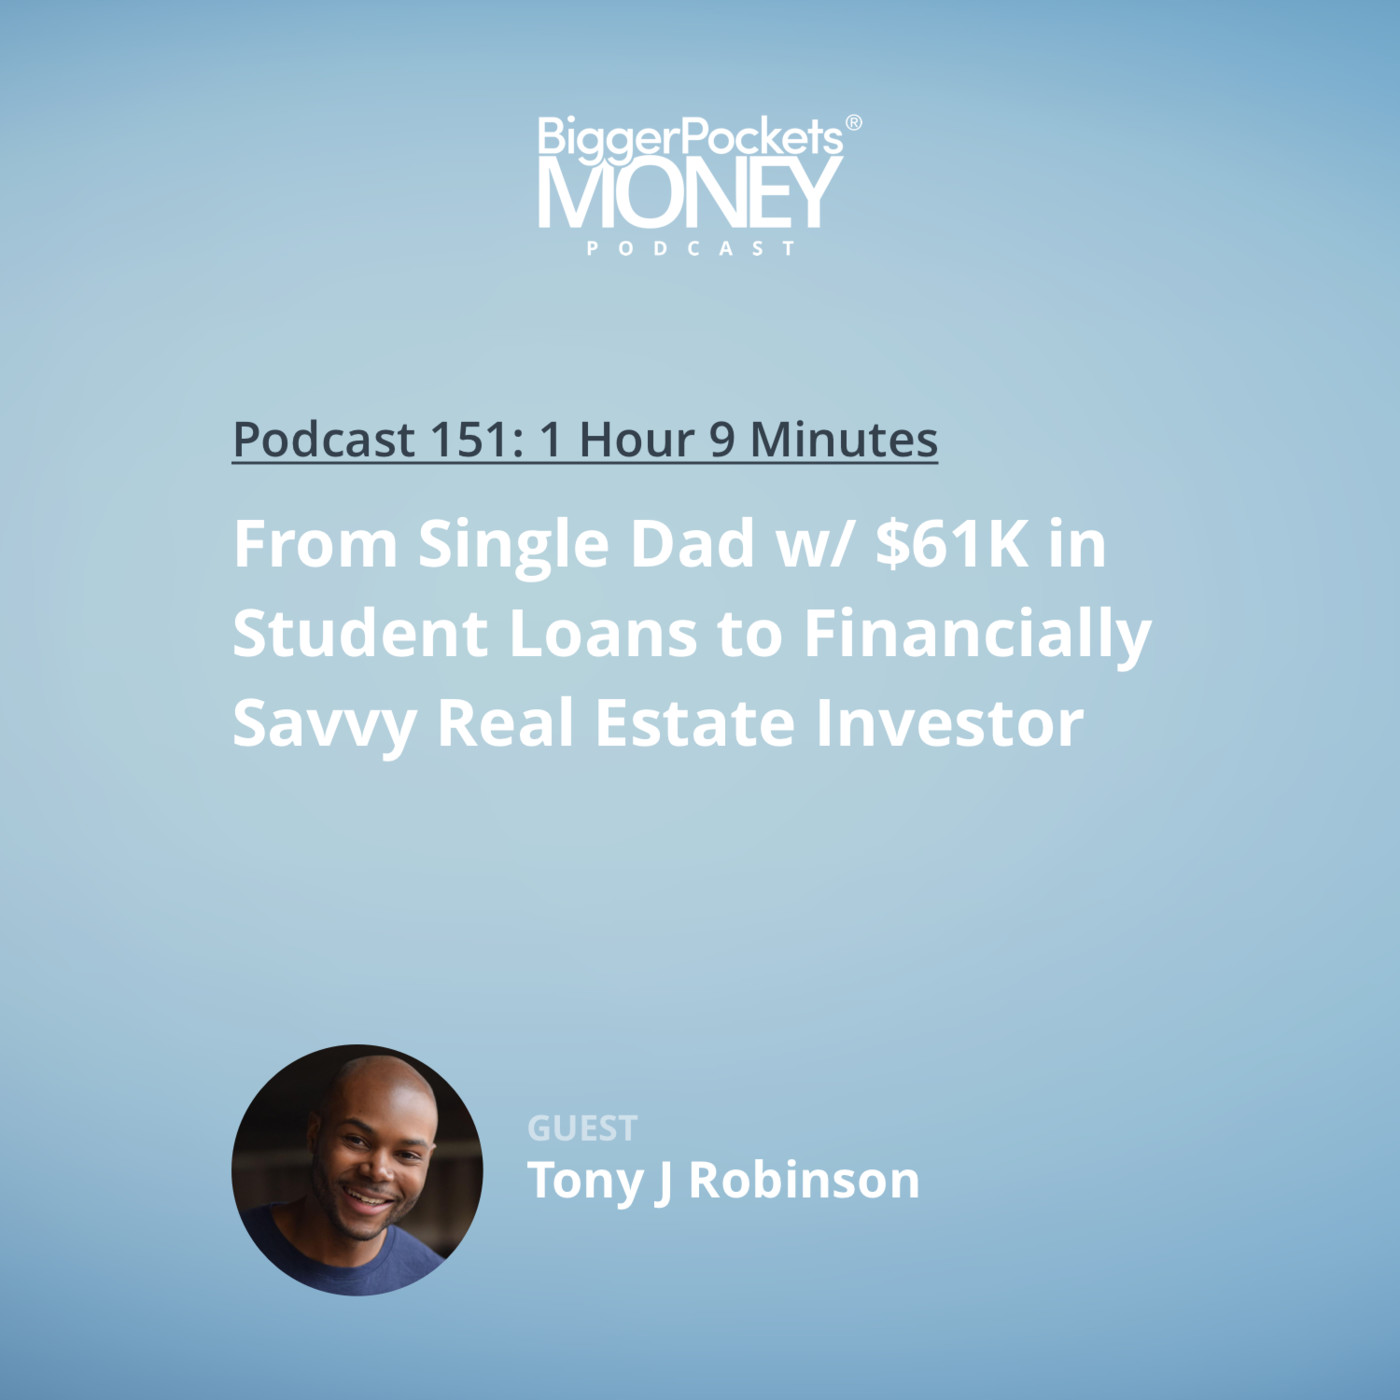 151: From Single Dad w/ $61K in Student Loans to Financially Savvy Real Estate Investor with Tony J Robinson